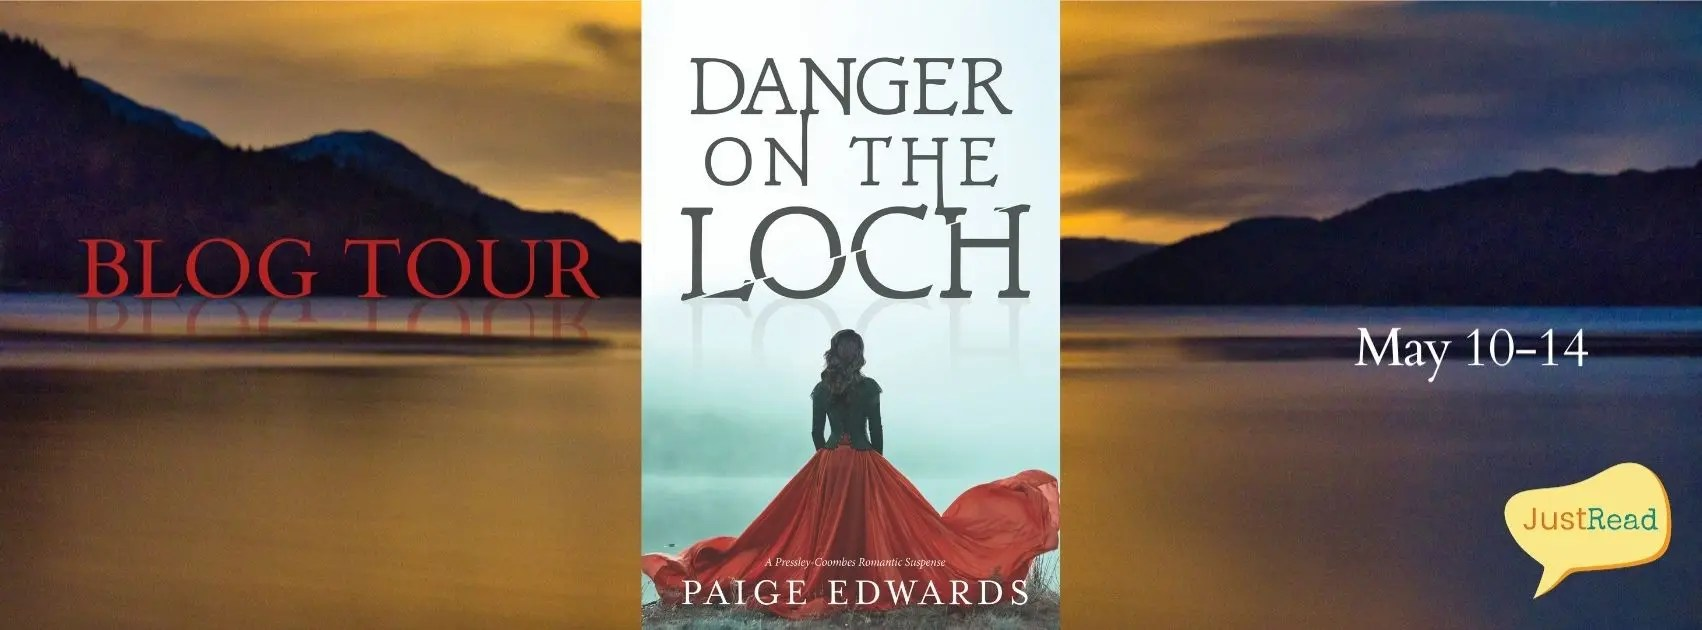 Welcome to the Danger on the Loch Blog Tour & Giveaway!